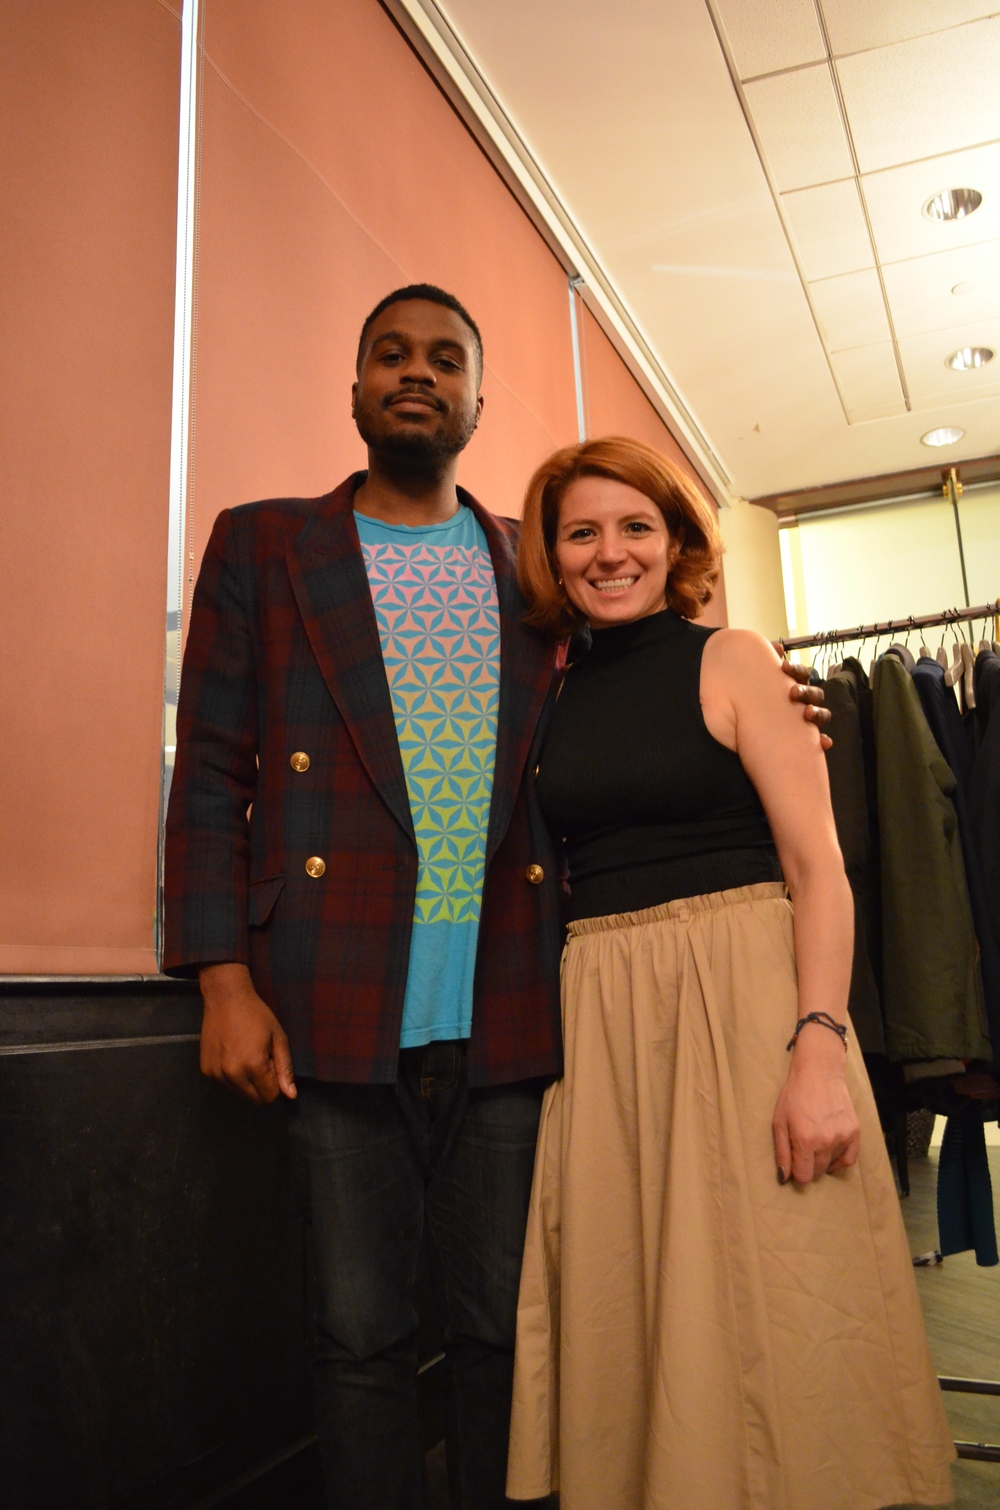 Tuesday, Oct. 7 at Head to Toe Fashion Show & Trunk Show | Tatiana Tejedor, the Co-Owner of Caramelo Clothing, and her client, Donald Vincent aka Mr. Hip.